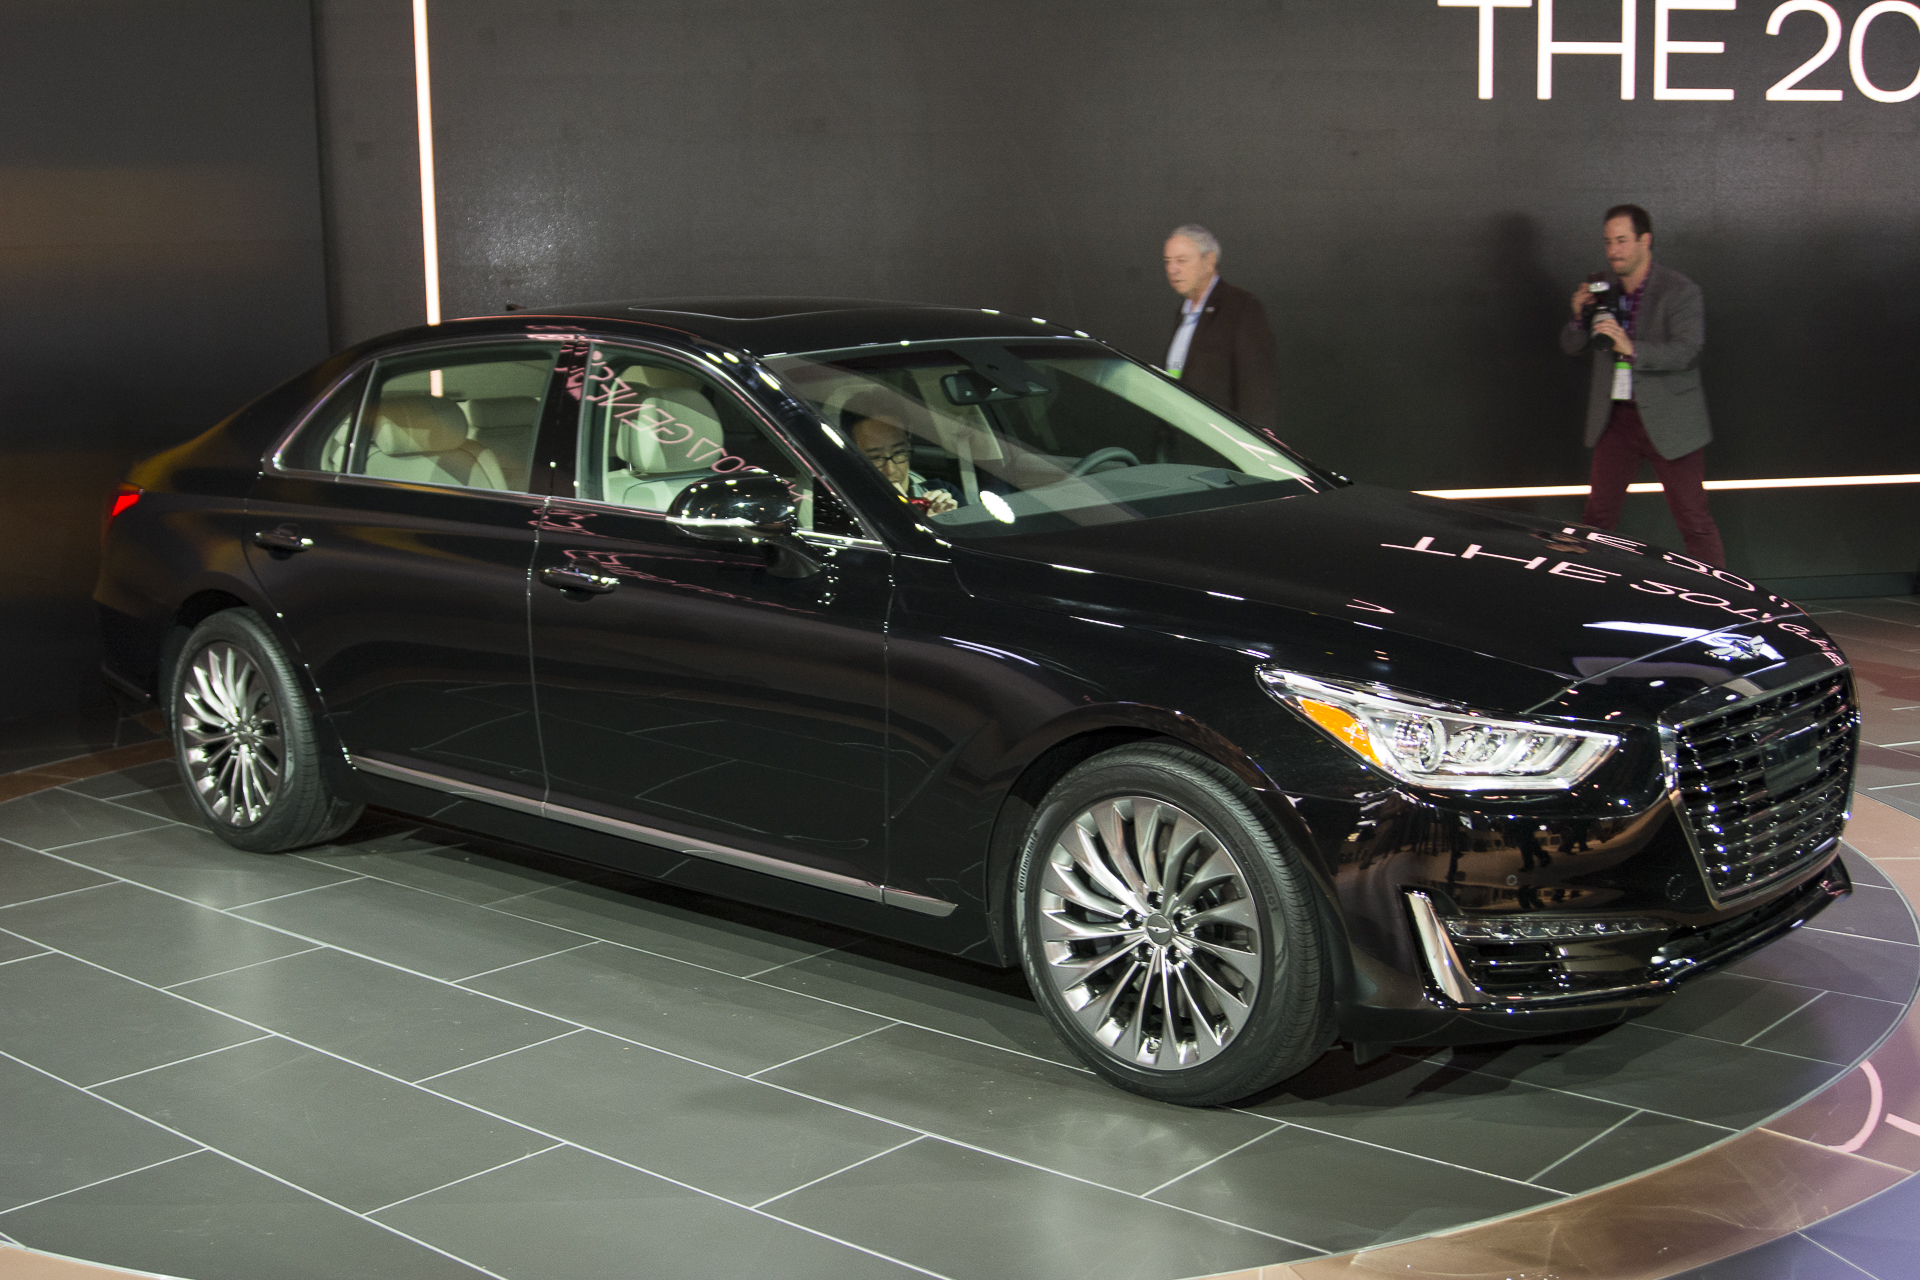 Genesis G90 Finally Debuted At The 2016 Detroit Motor Show 1